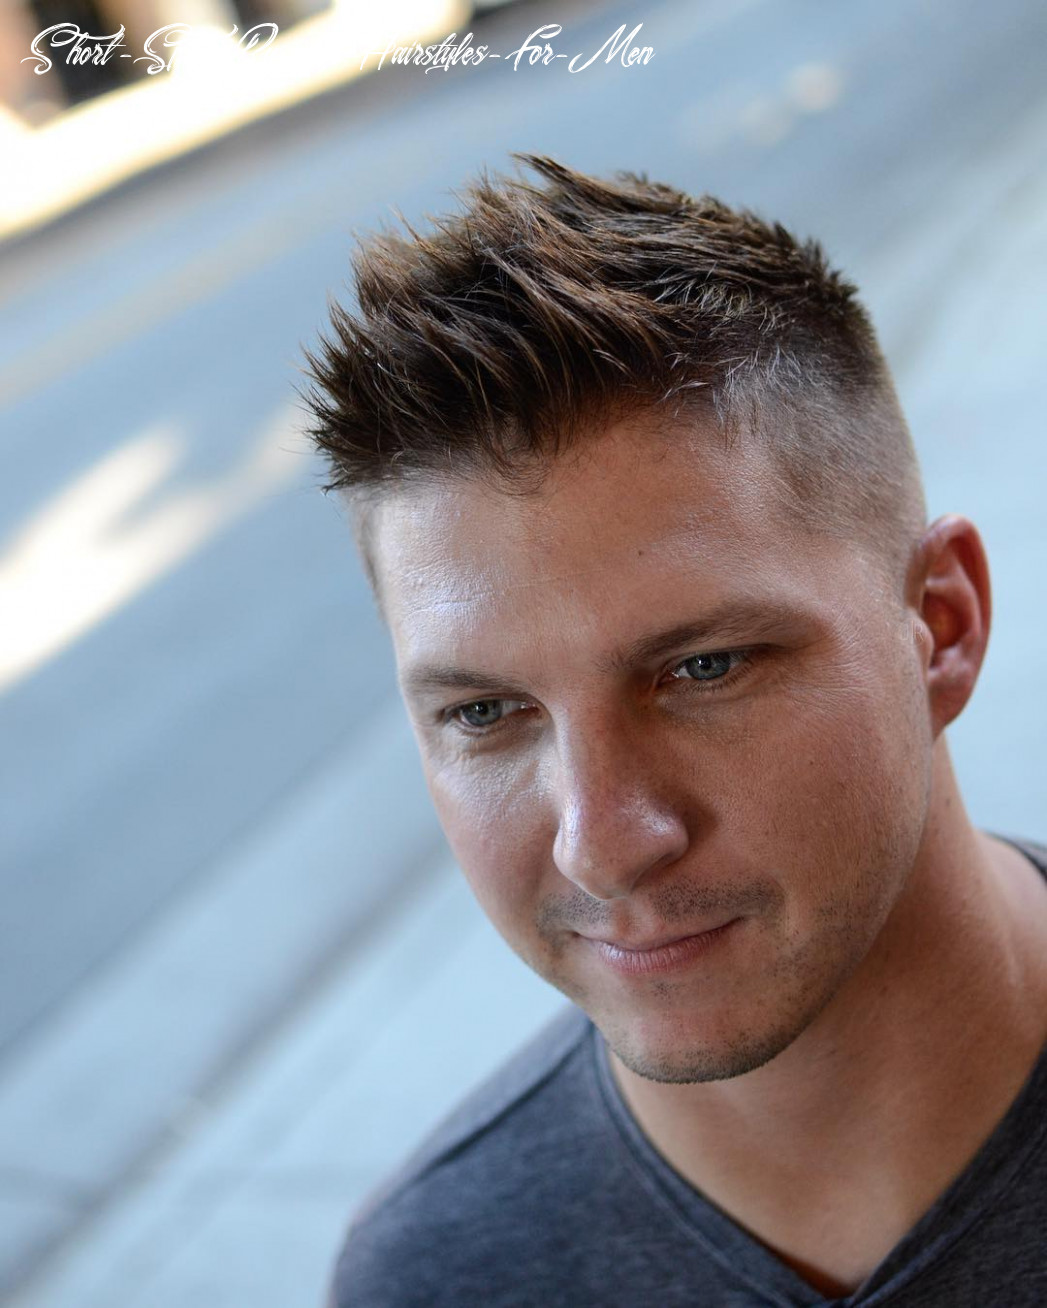 10 new hairstyles for men (10 update) short spiky business hairstyles for men